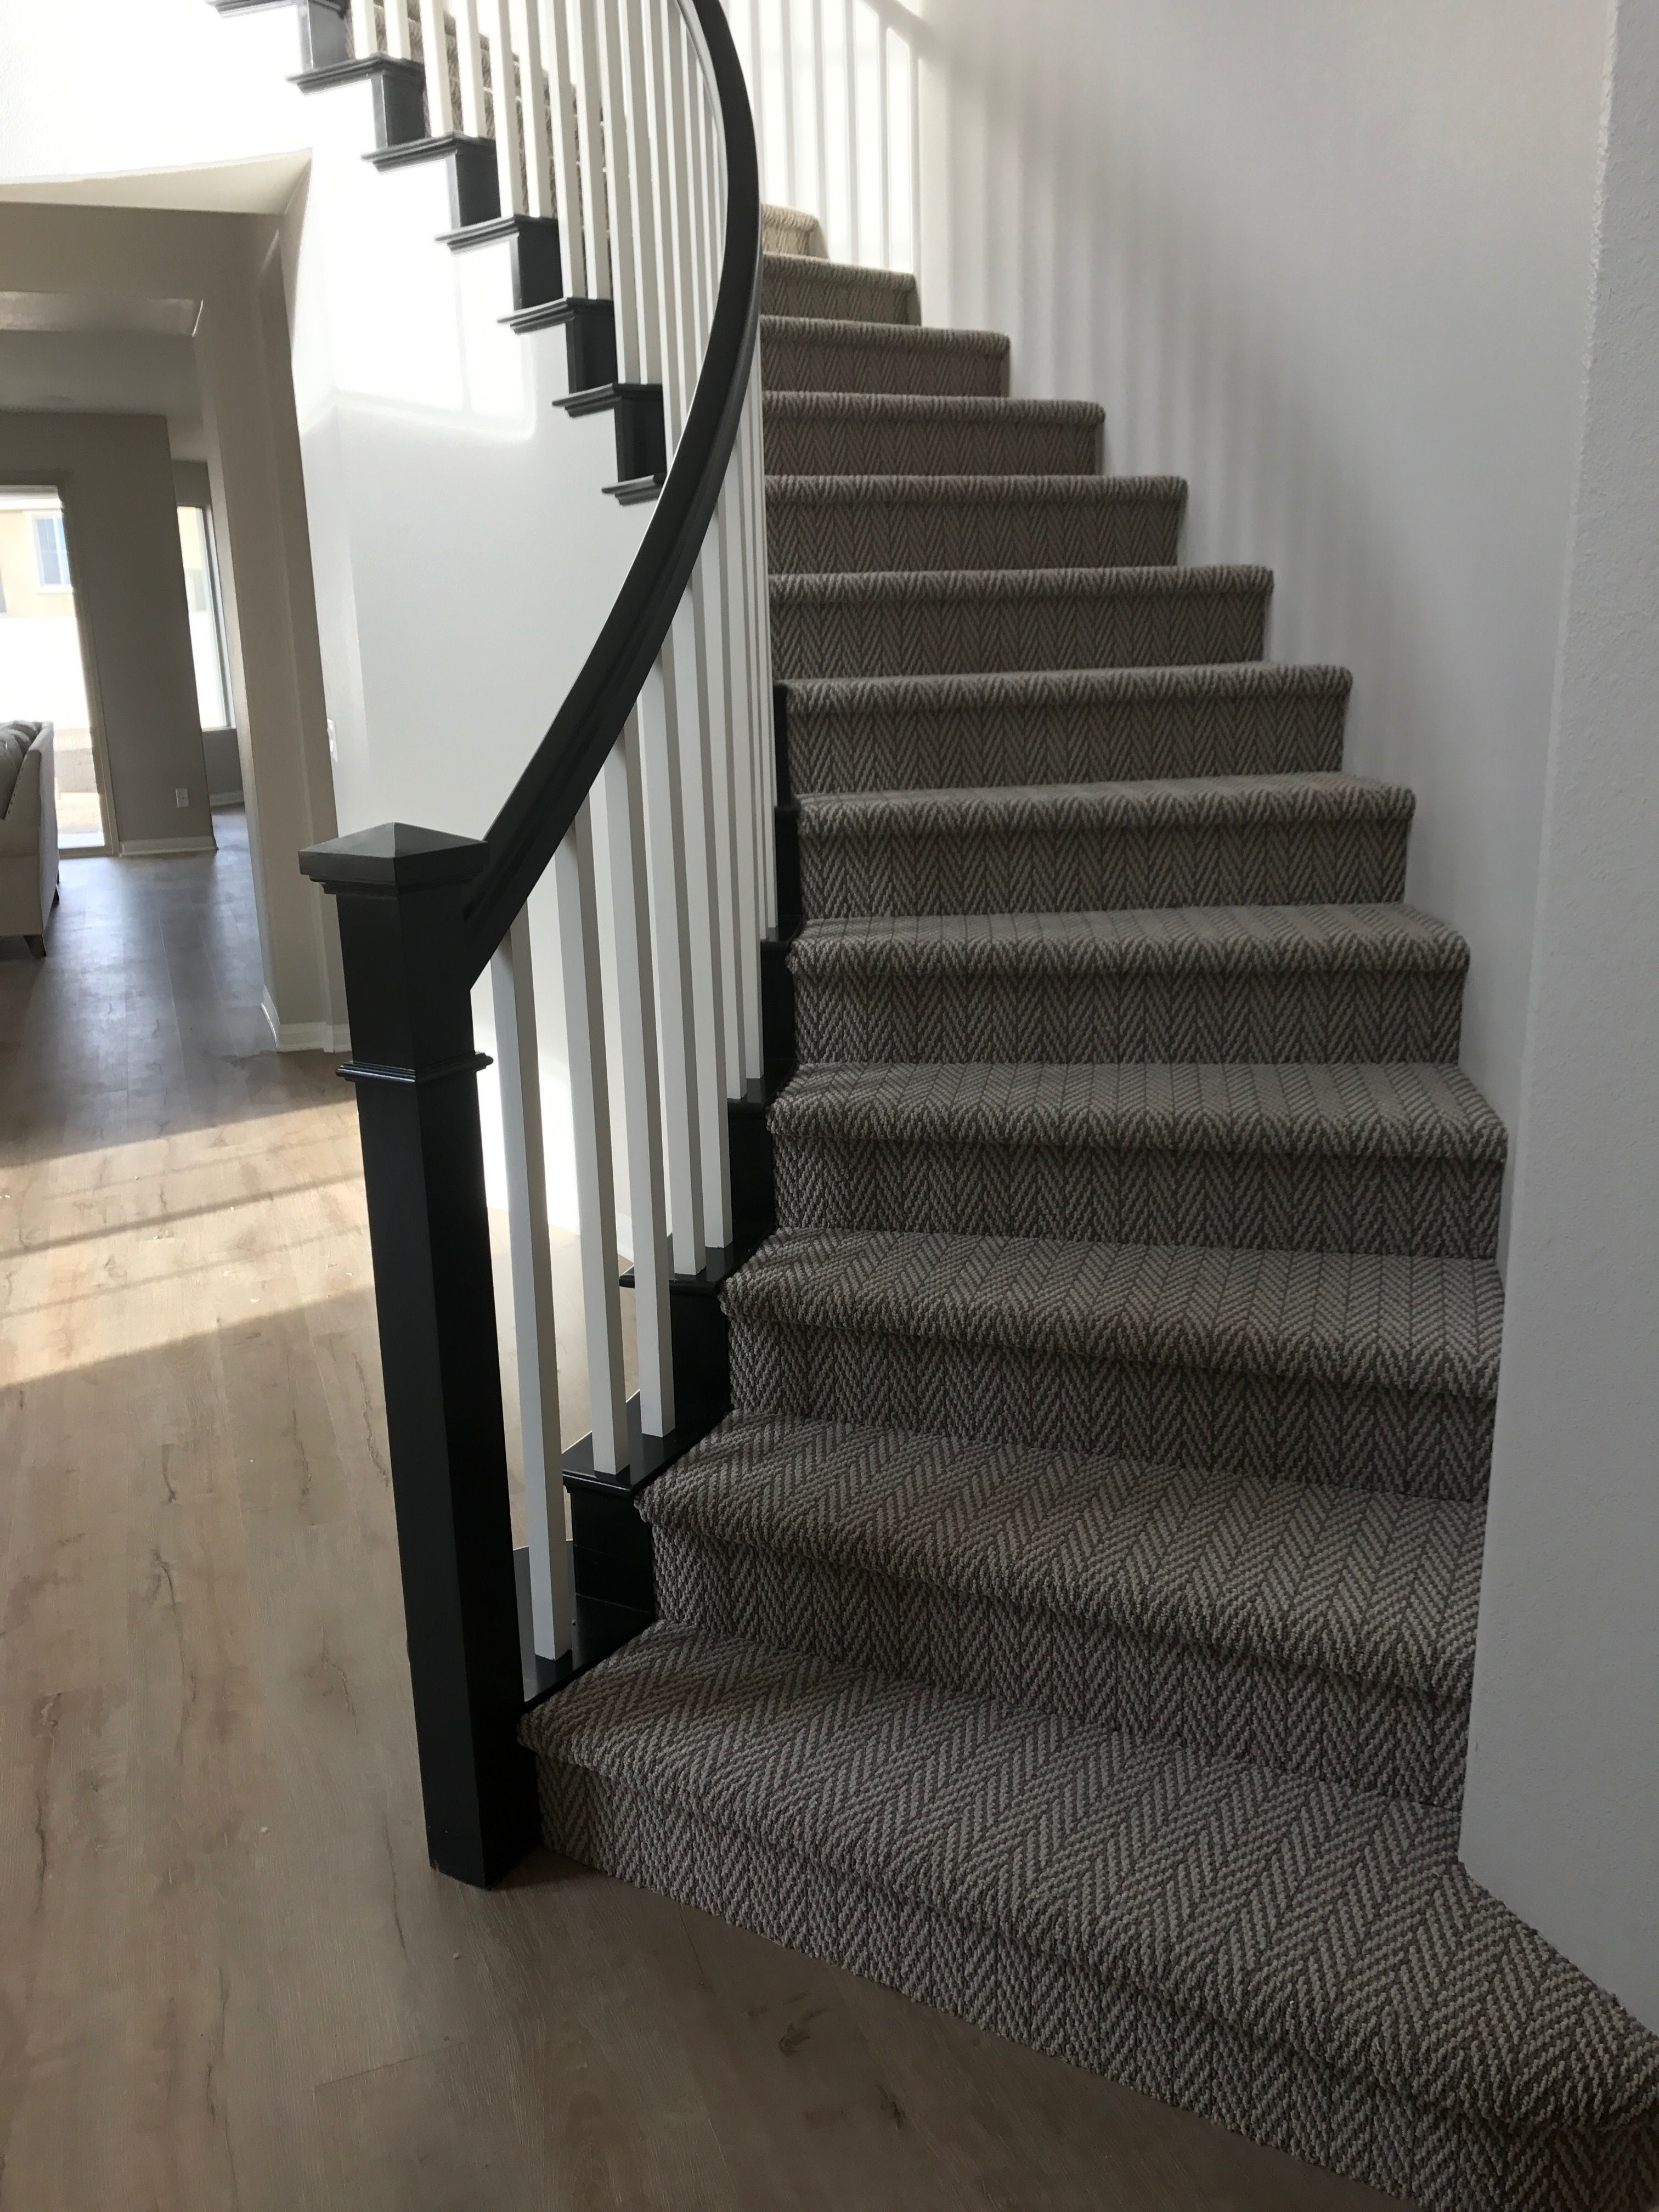 Amazing Herringbone Stairway Carpet. Best Stair Carpet For High Traffic Areas.  Tuftext Carpet By Shaw.